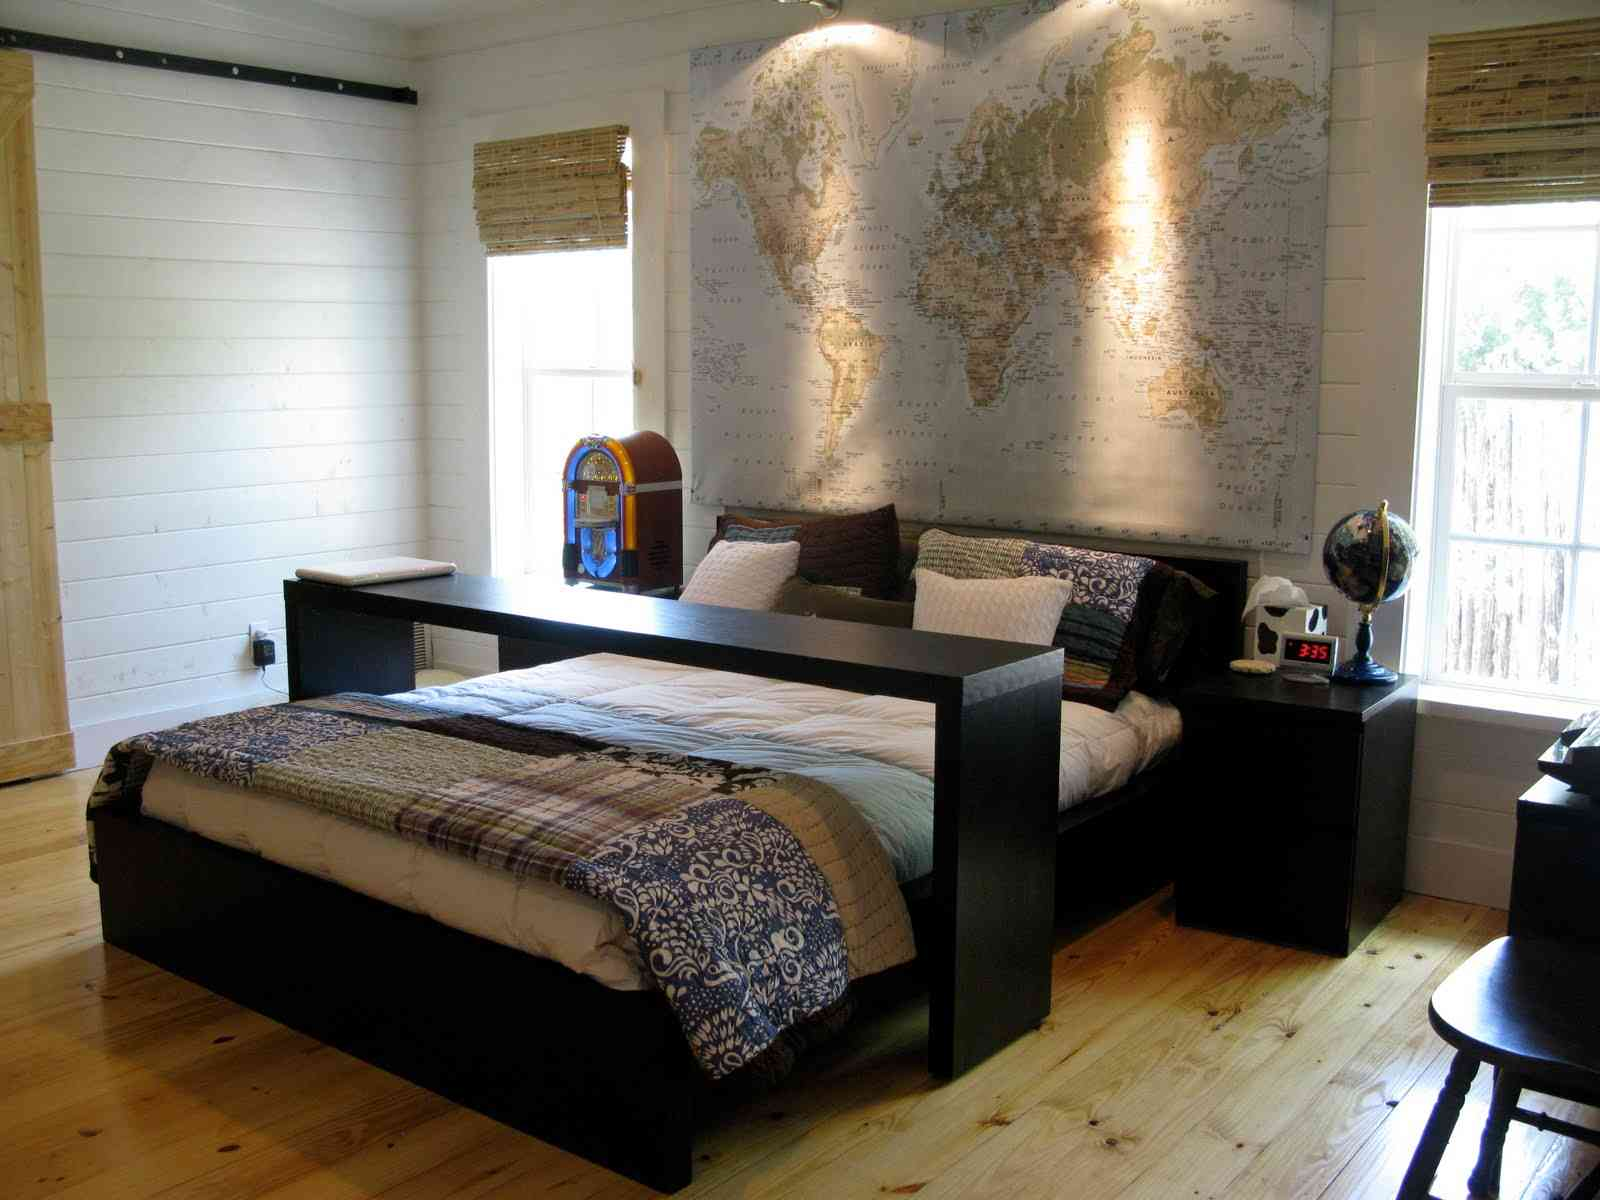 Bedroom furniture from ikea new bedroom 2015 room for New bedroom designs pictures